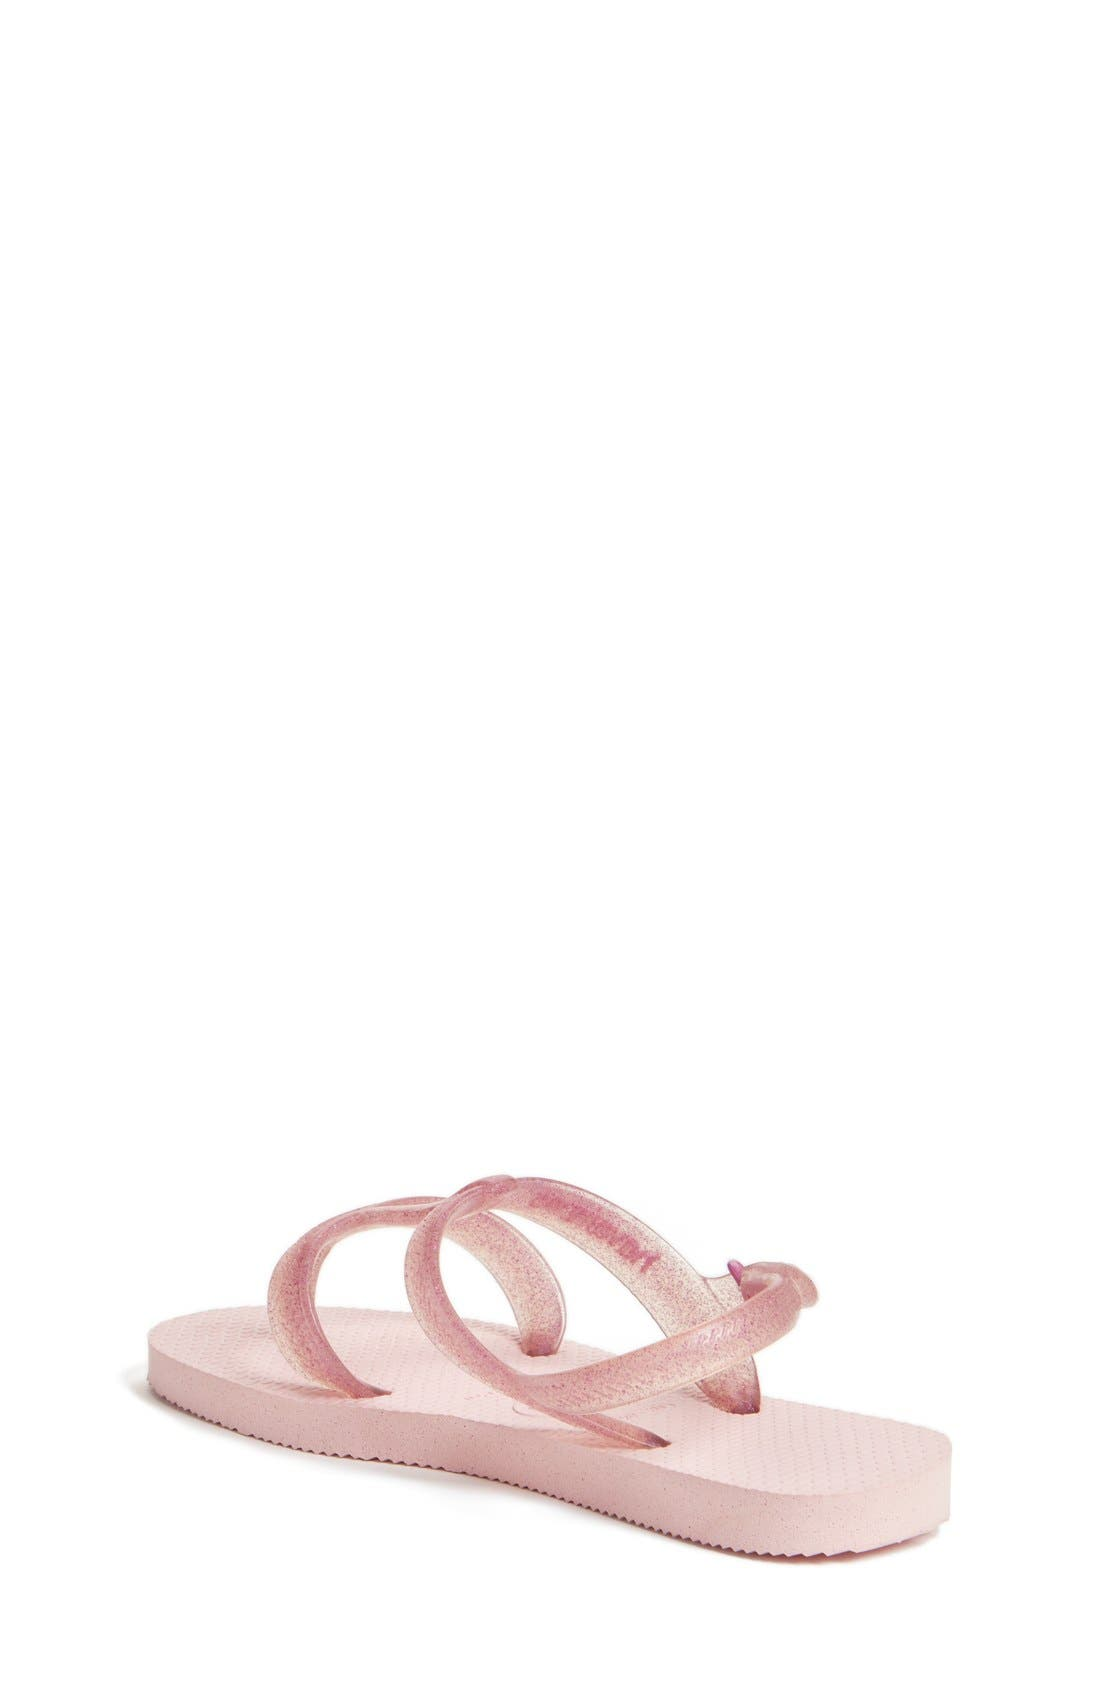 'Joy' Sandal,                             Alternate thumbnail 2, color,                             Pink